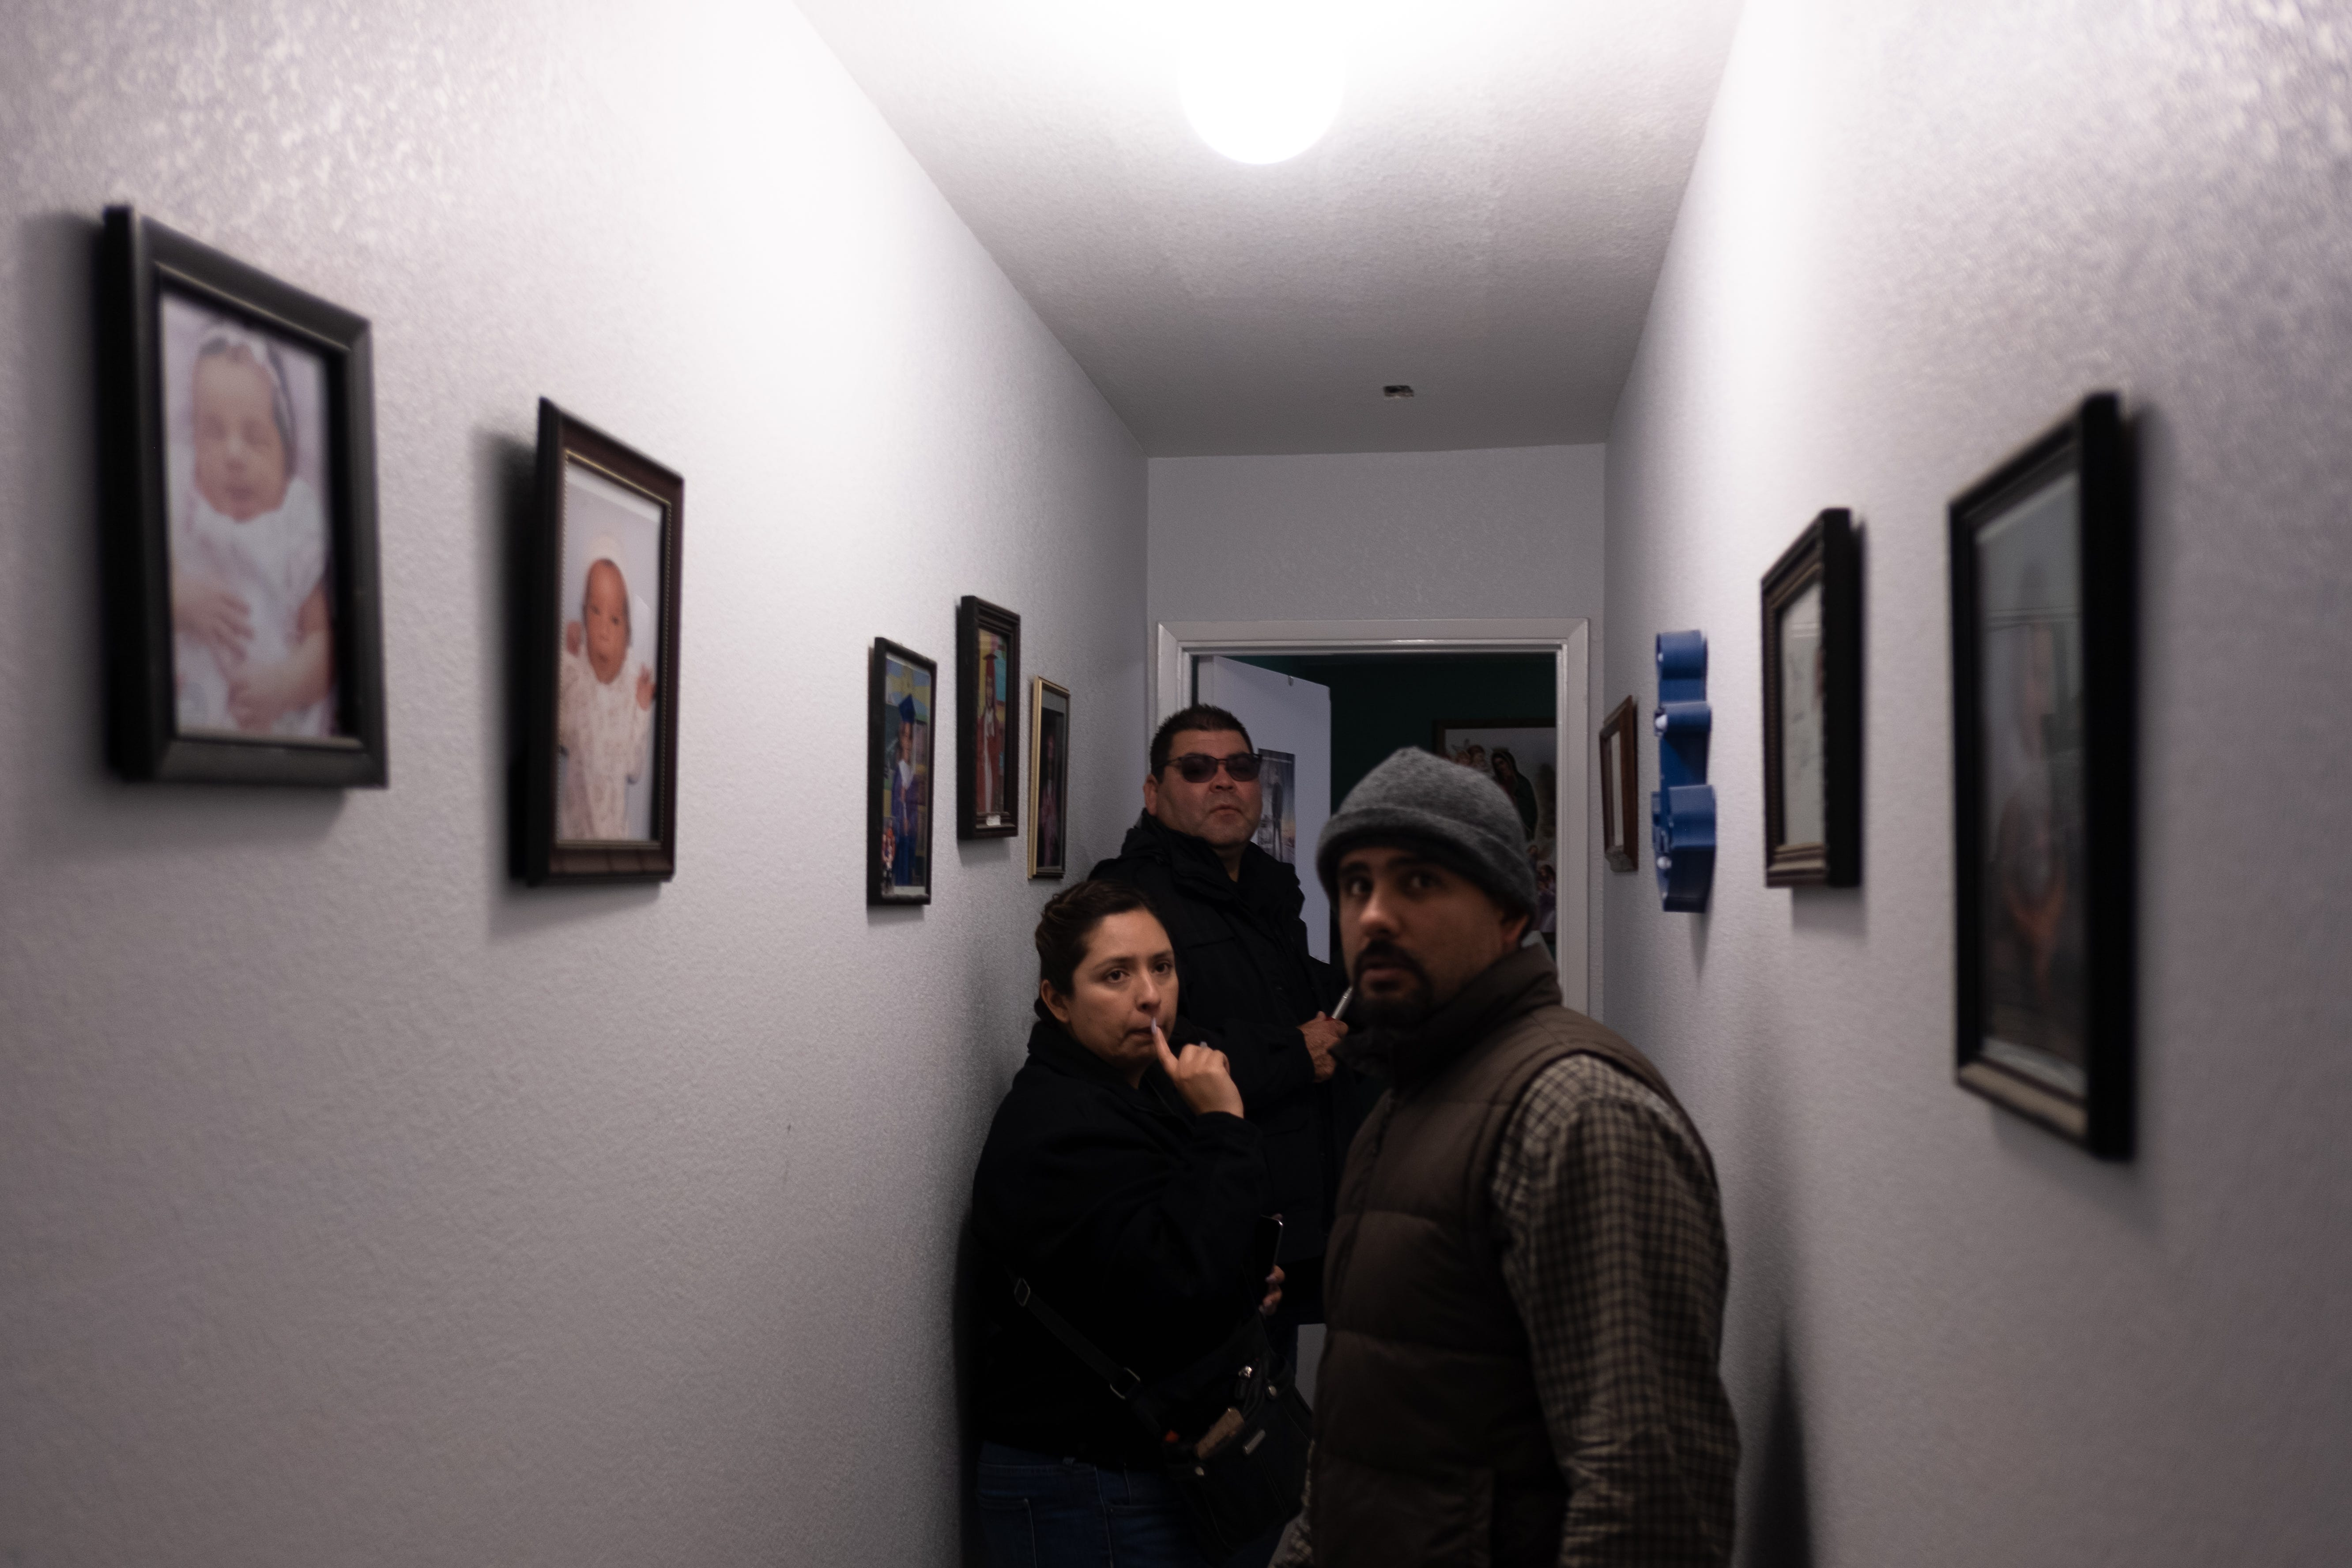 Code enforcement officers Cindy Guerrero and Lorenzo Salazar inspect the home of Cuahtemoc Becerra on the North Side of Salinas.